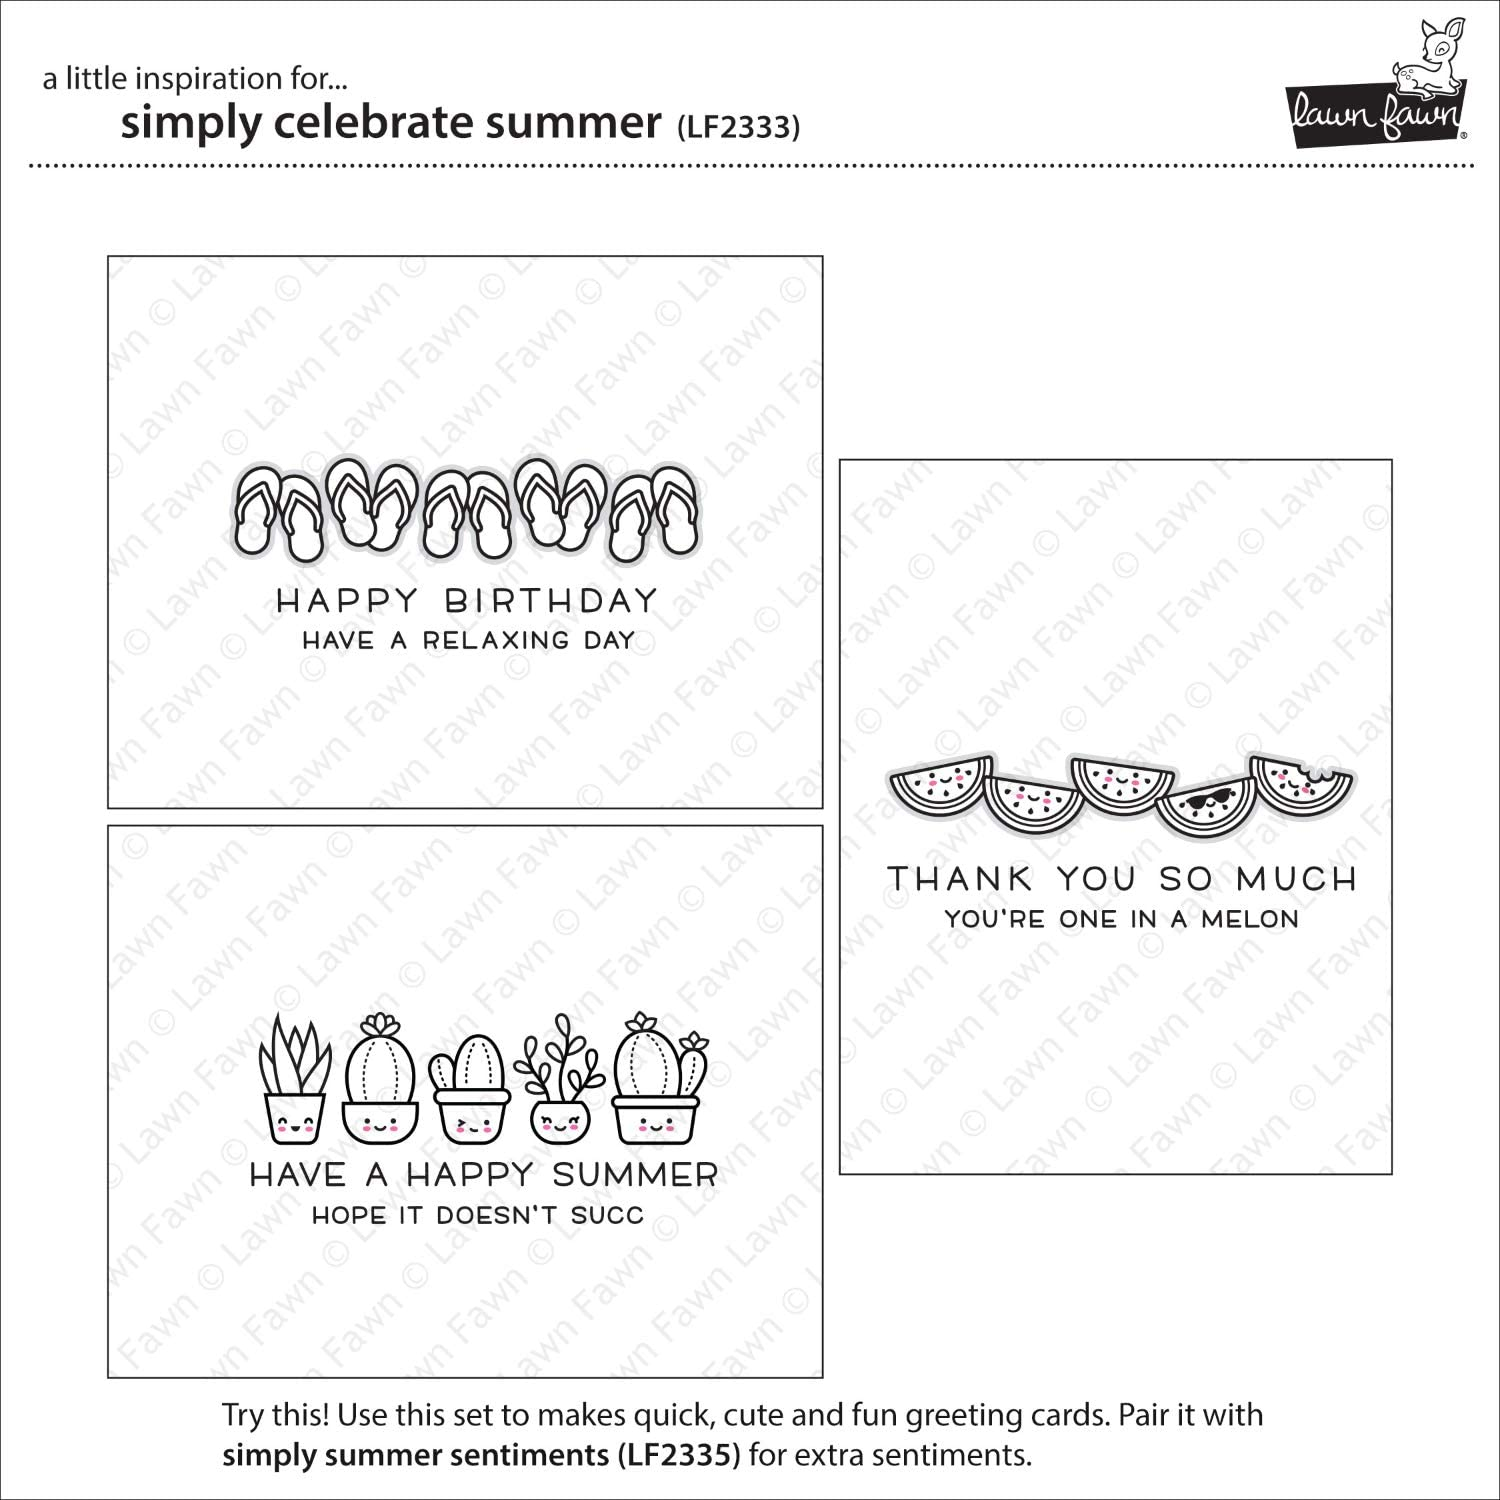 Lawn Fawn LF2333 Simply Celebrate Summer 4X6 Clear Stamp Set